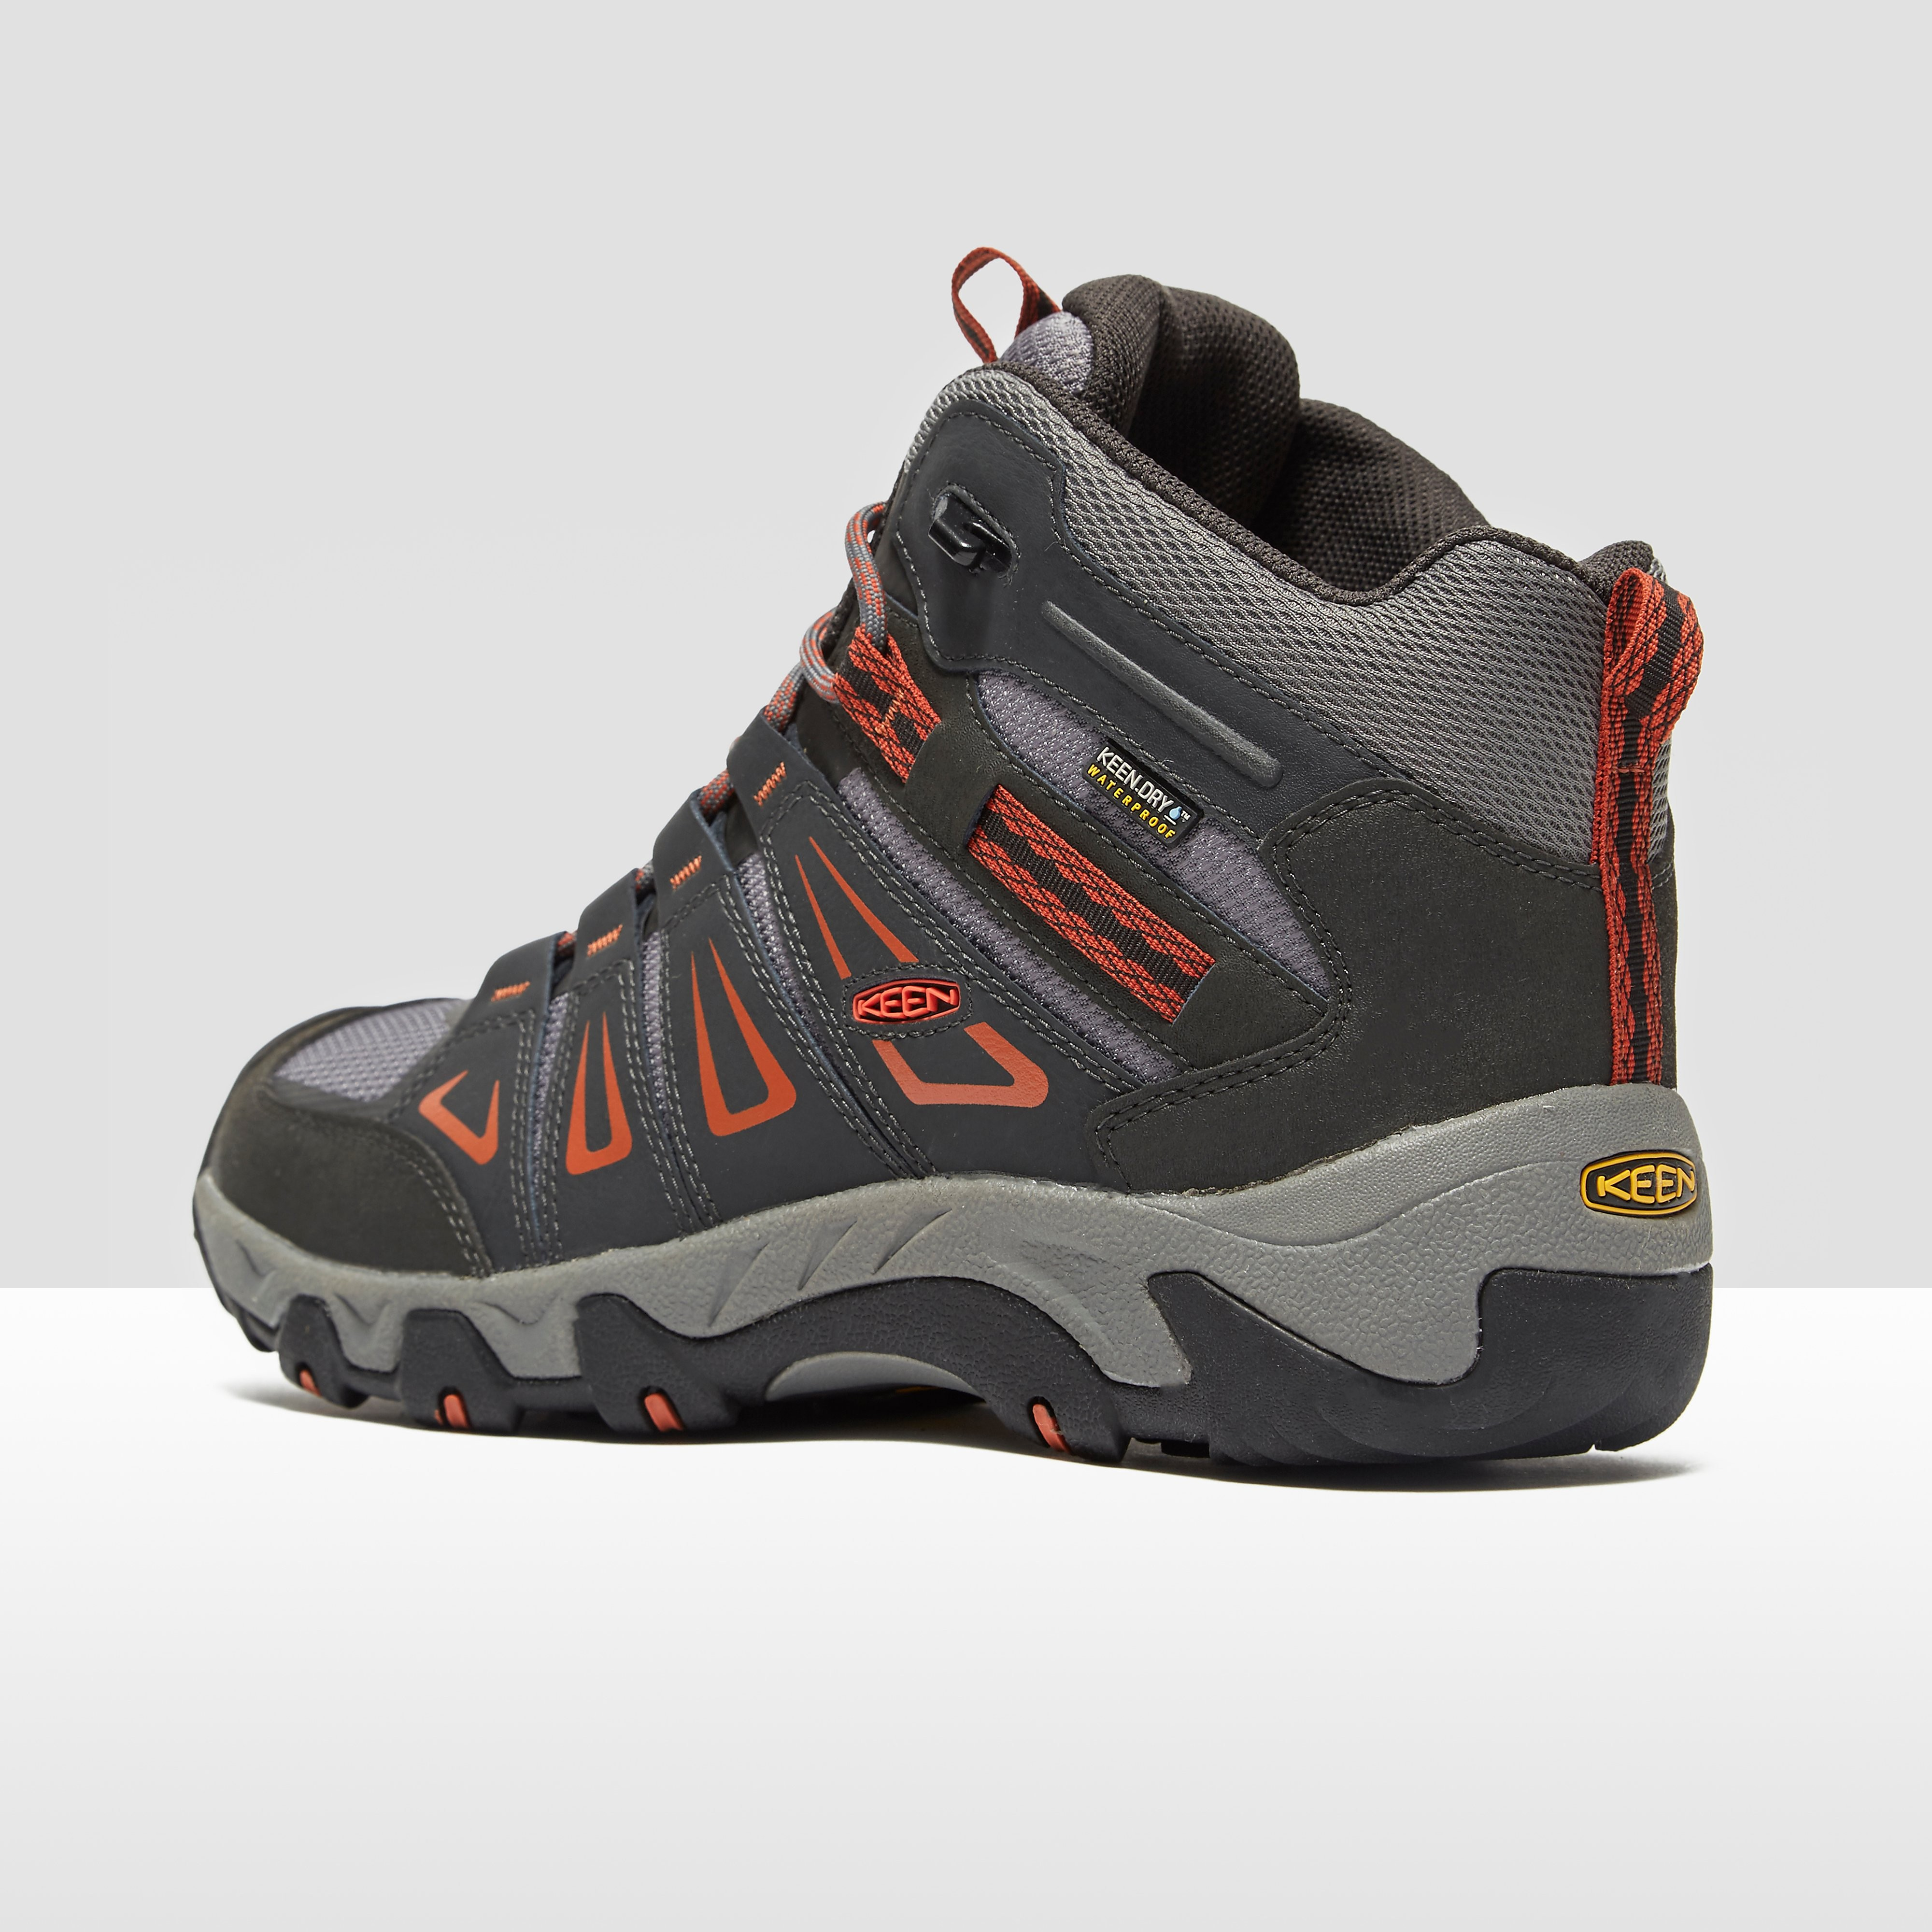 Keen Oakridge Mid Waterproof Men's Hiking Boot